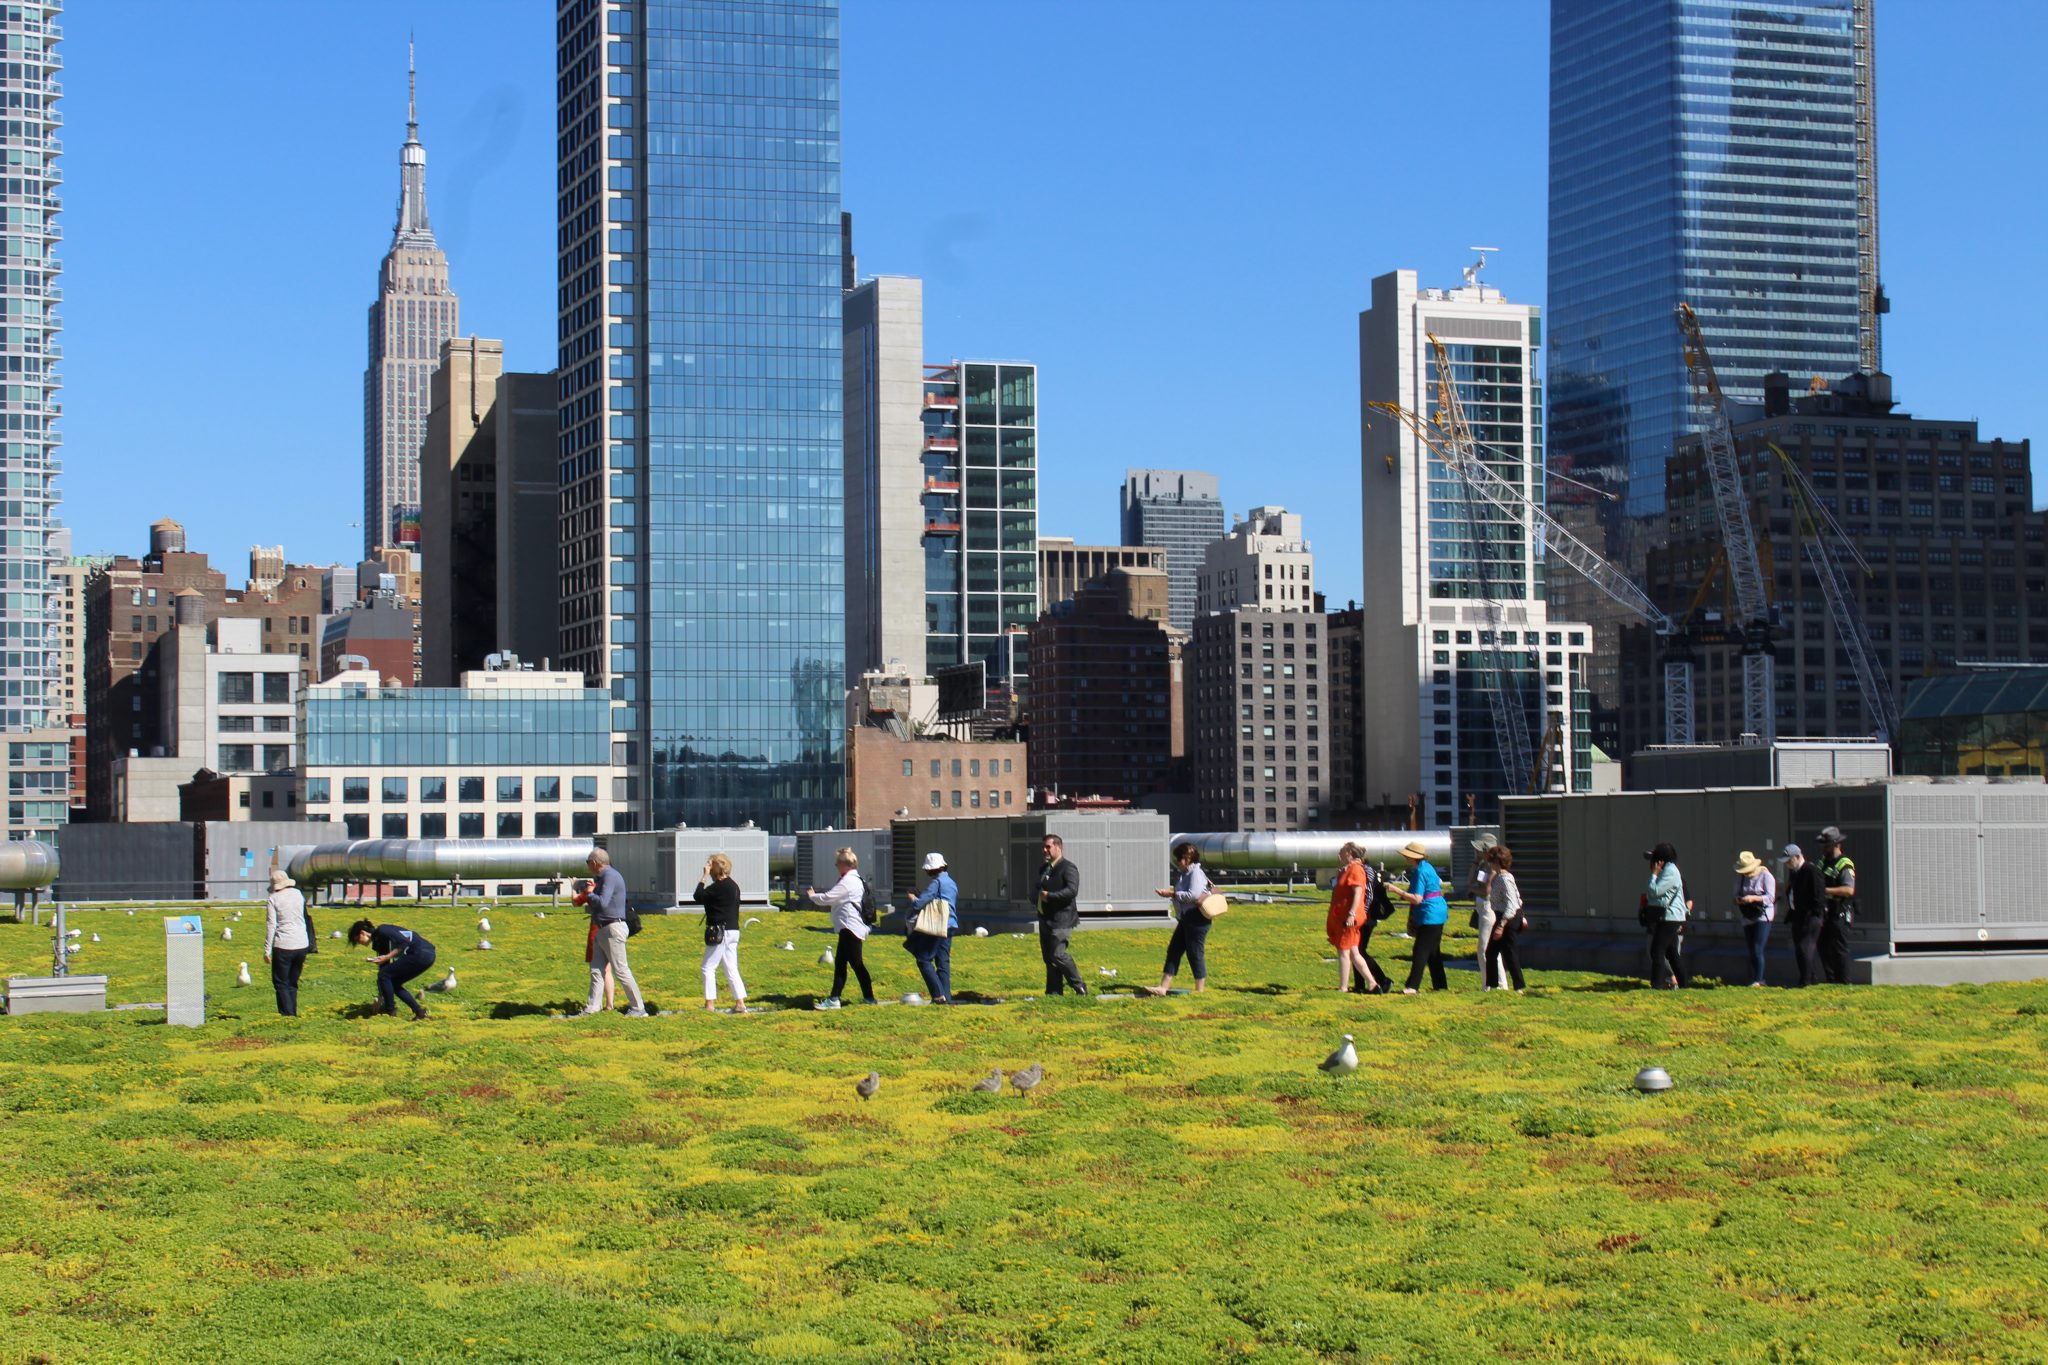 Donors and staff walk across the grassy floor of the Javits Center green roof.